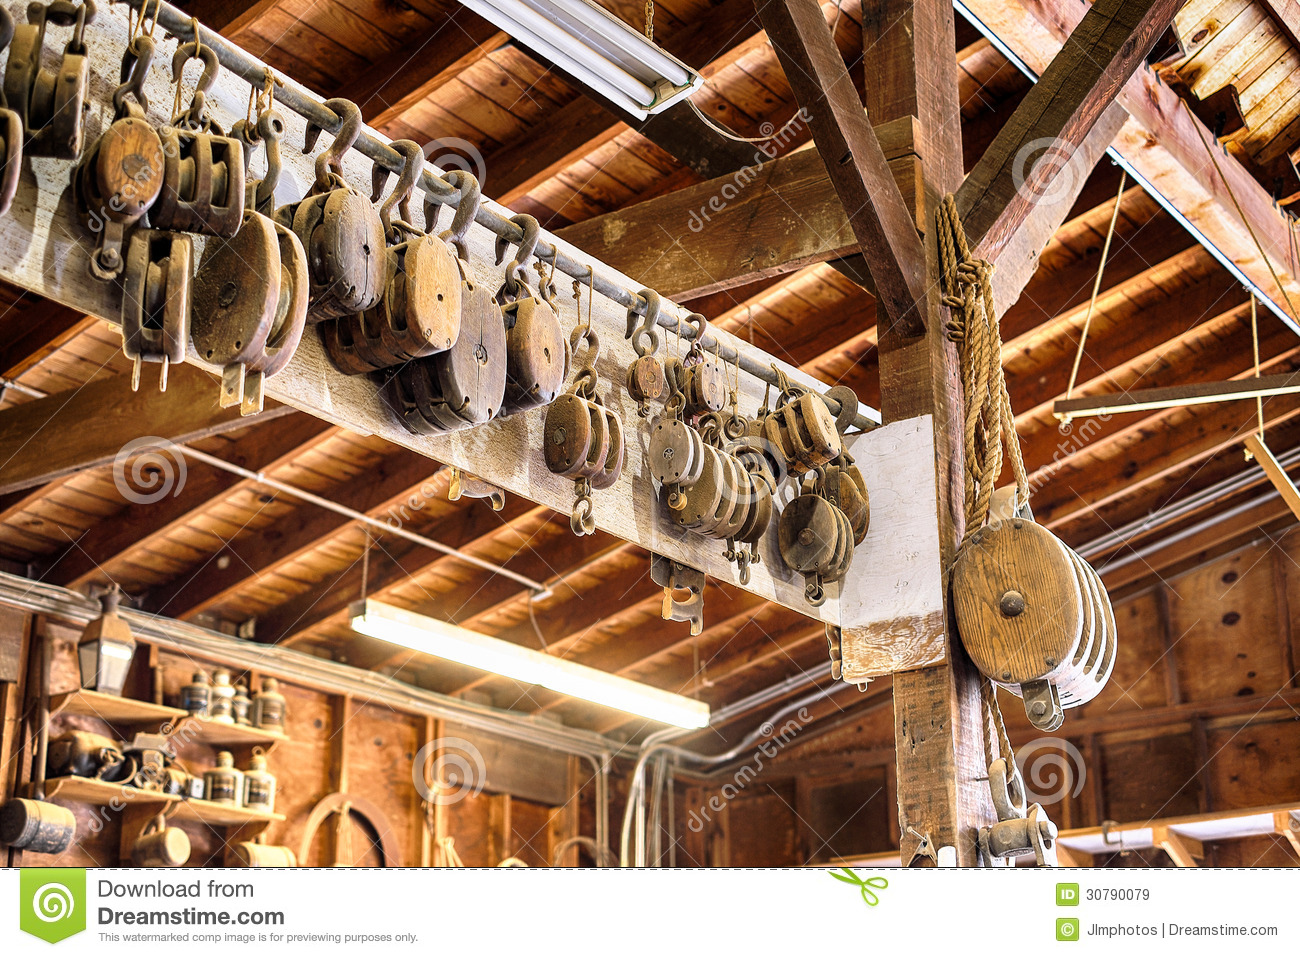 Old Wooden Block And Tackle Pulleys In A Boat Builders Shop Royalty Free Stock Images - Image ...